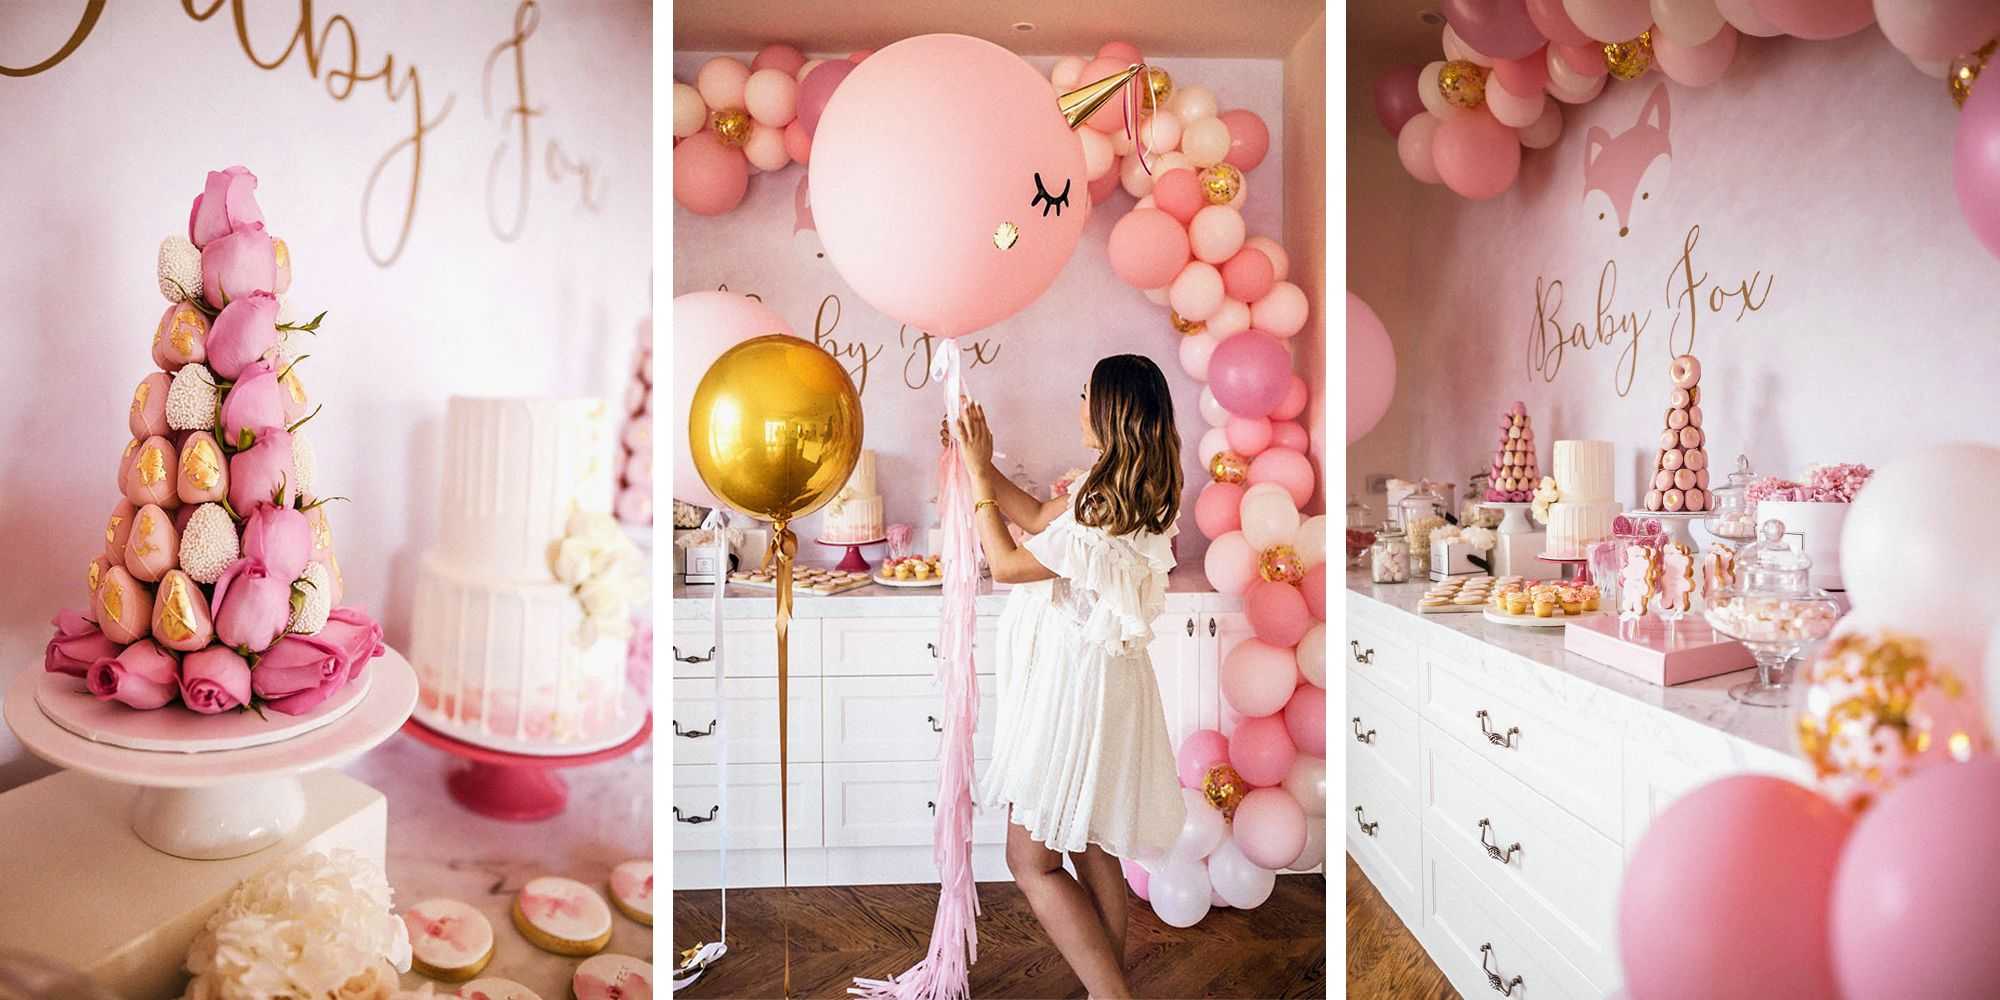 7 Best Baby Shower Ideas for 2018 , Trendy Baby Shower